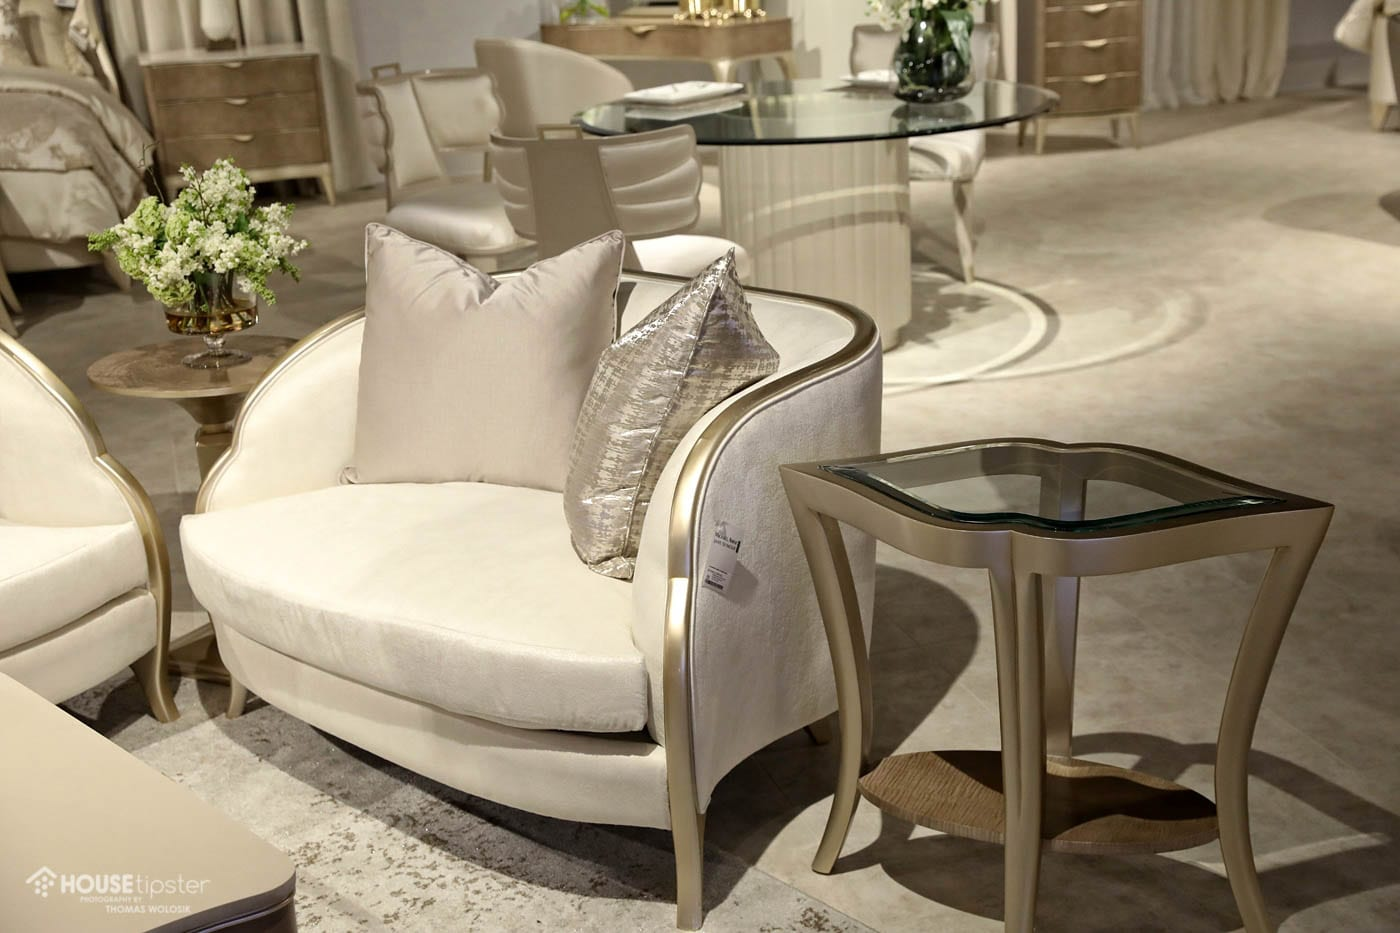 The Deco Influence Lines Hollywood Chic It S An Incredible Look Grubb Told Amini And Seymour